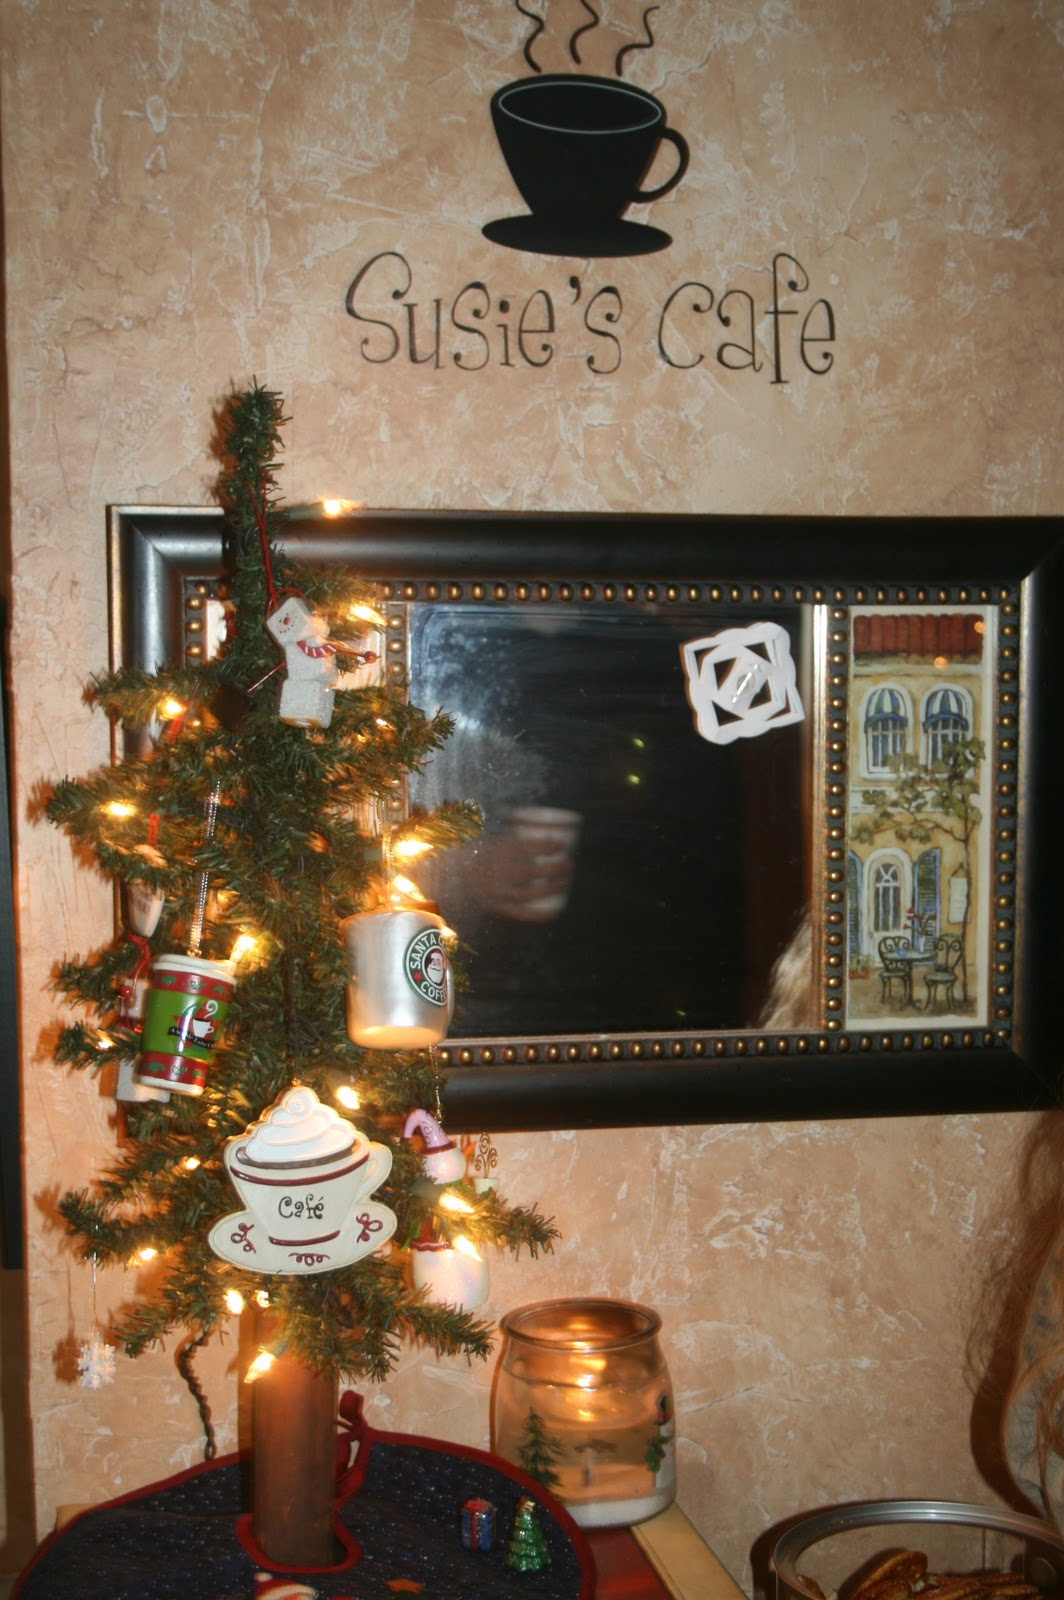 SusieQTpies Cafe: Merry Christmas From Our Home To Yours